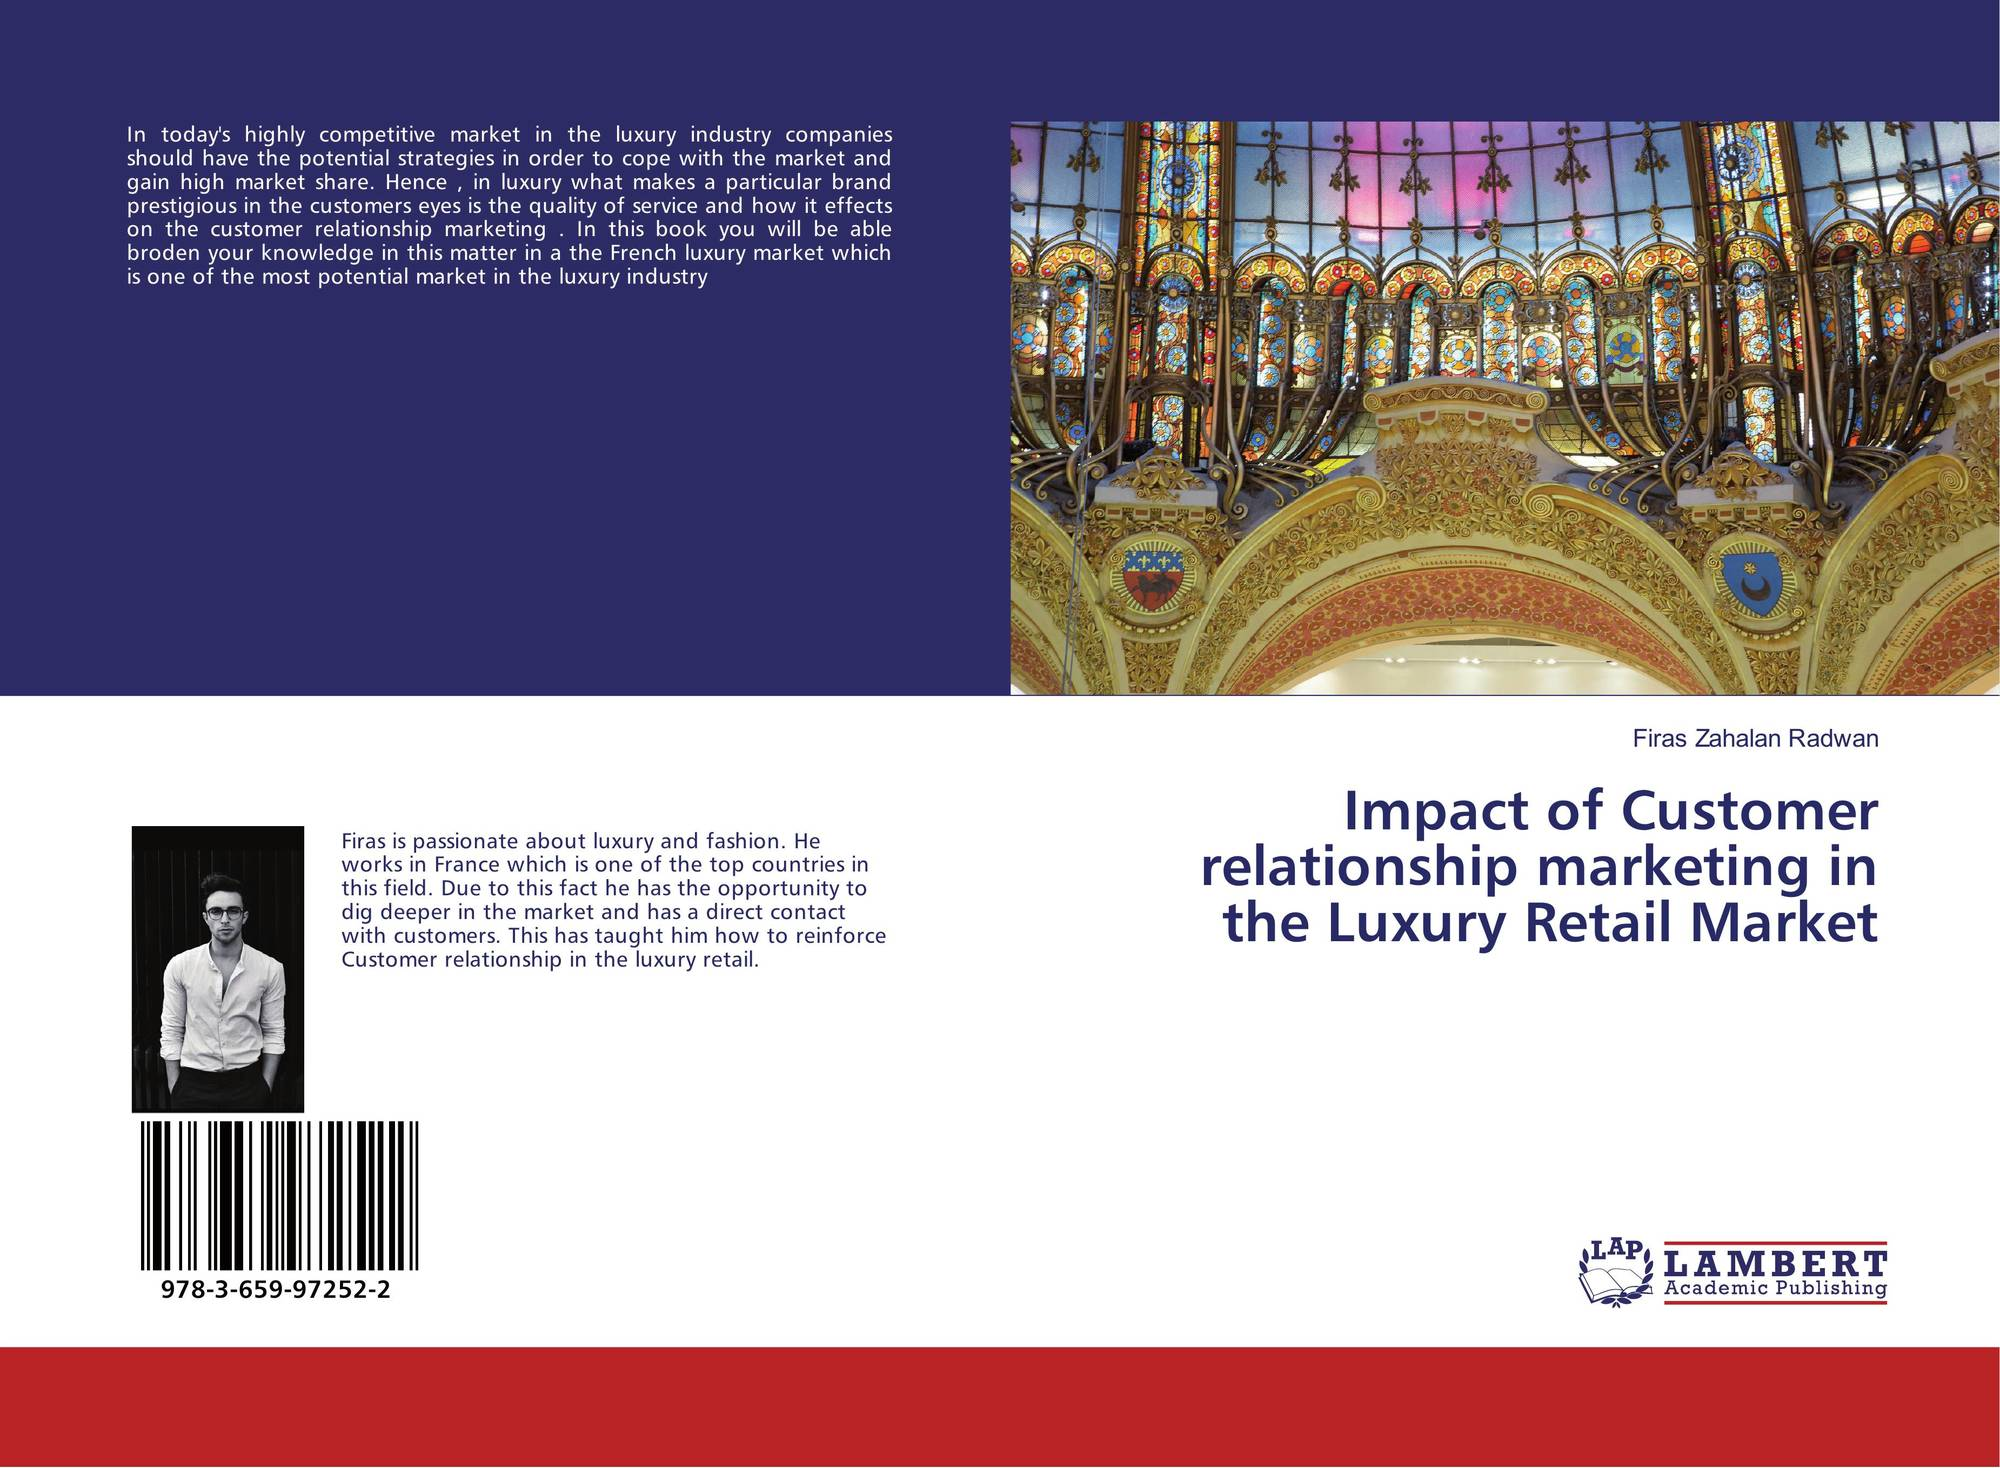 relationship marketing impact Research showed that there is a significant impact of the instruments that form the marketing mix (specifically, product/service, pricing, promotion, and placing/distribution) on customer loyalty another study examined the elements of marketing mix in relation to brand loyalty in the drug.